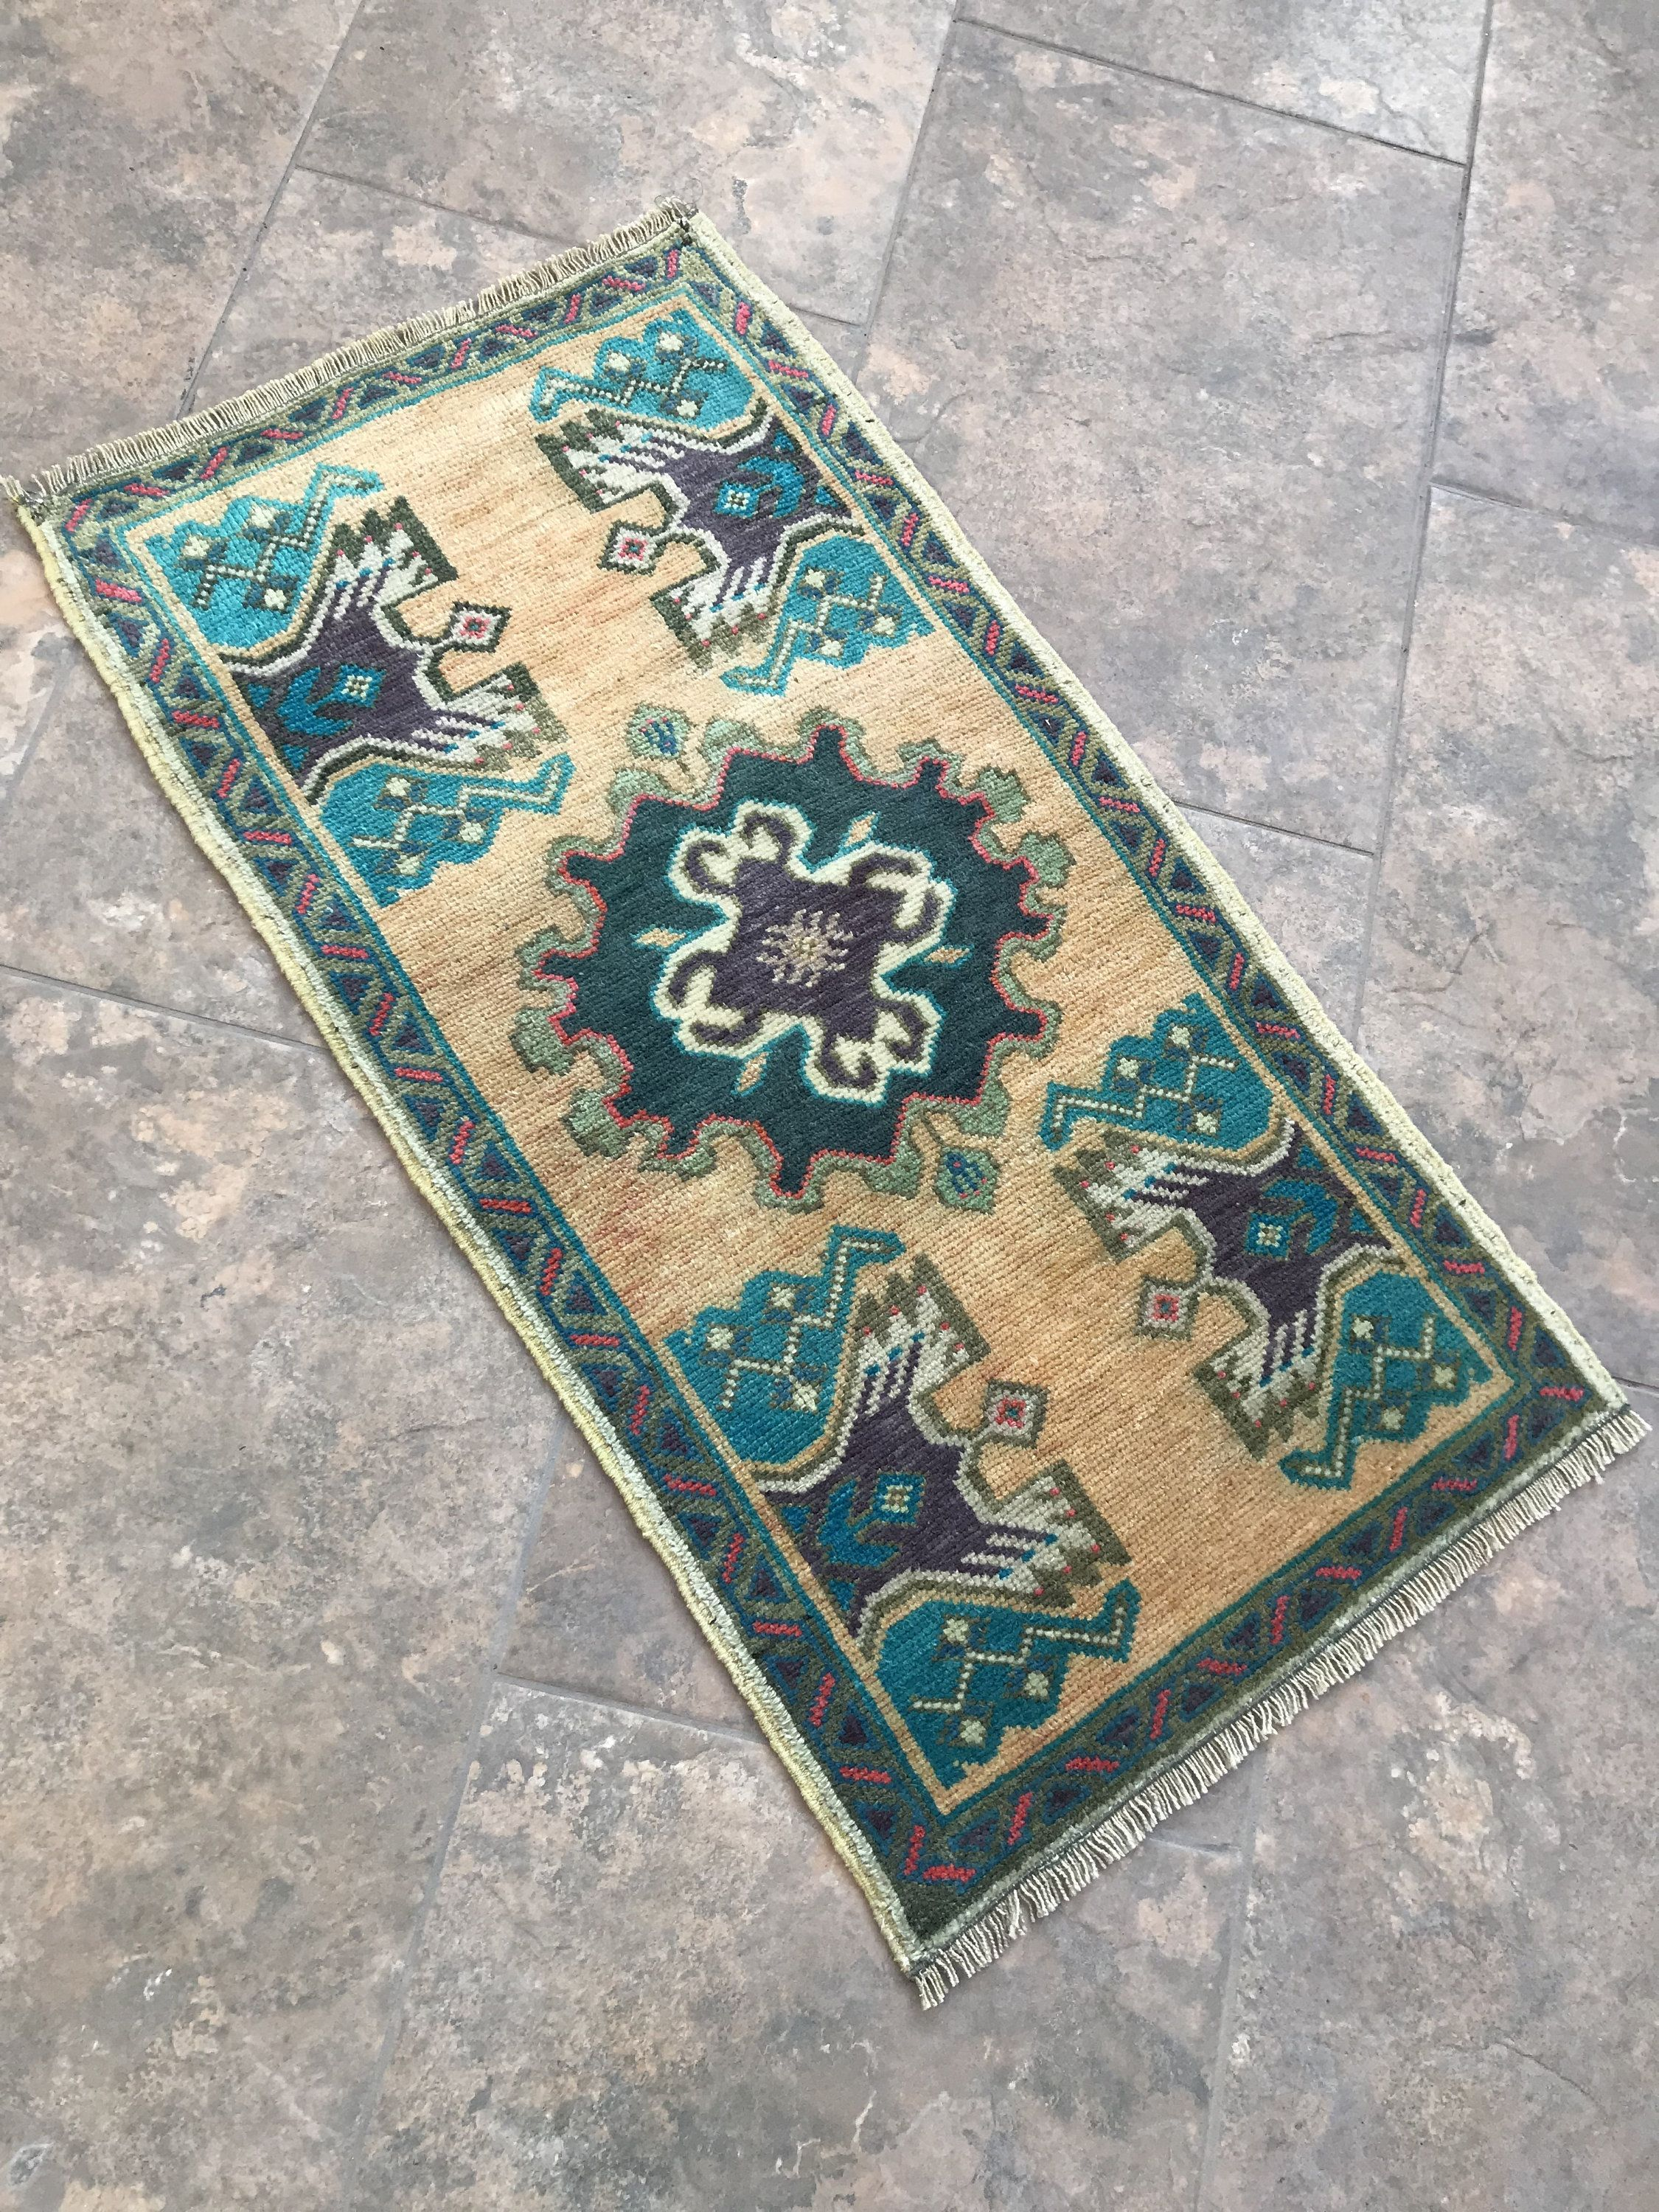 Vintage Wool Small Rug Front Door Rugs Turkish Rugs Room Access Entryway Rug Mats Outdoor Handmade Door Mat Rug 3 2 In 2020 Front Door Rugs Door Rugs Small Rugs